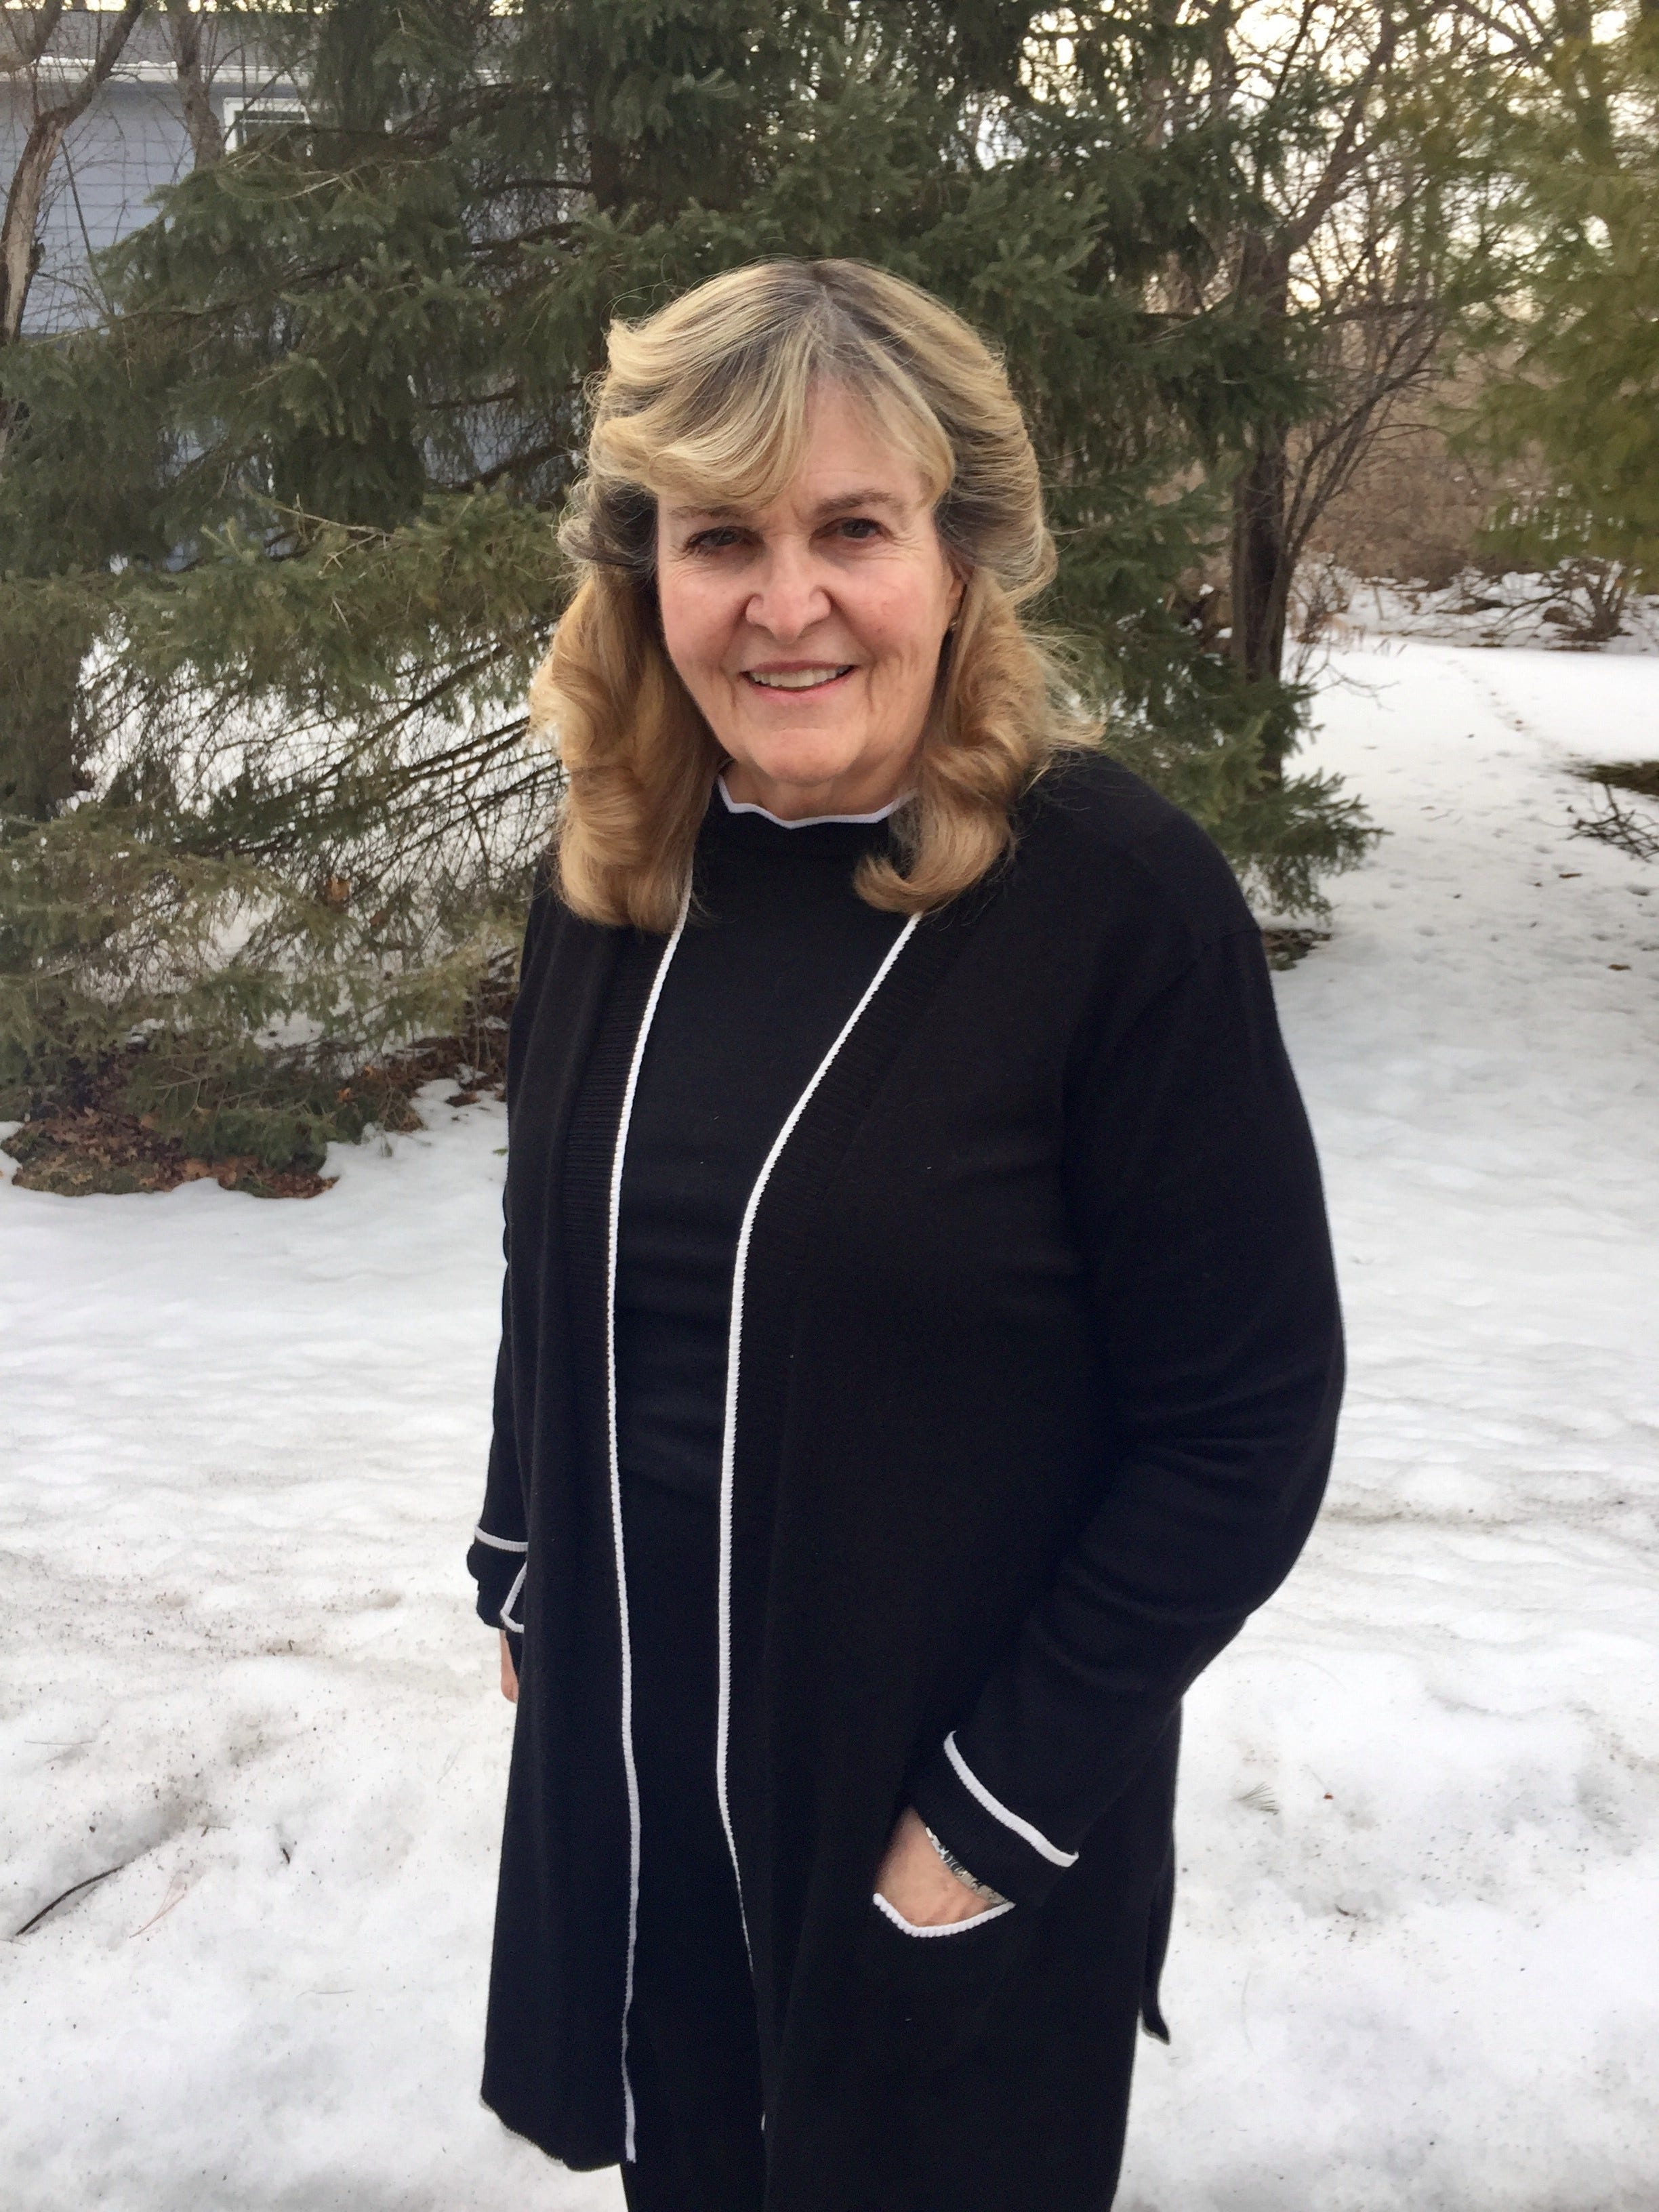 """""""I feel like I was the lucky one to have that opportunity to merge my perceptions with someone else's perceptions, and come out with a new perception afterwards,"""" said Elise Mull, 70. """"What a great gift that is."""""""